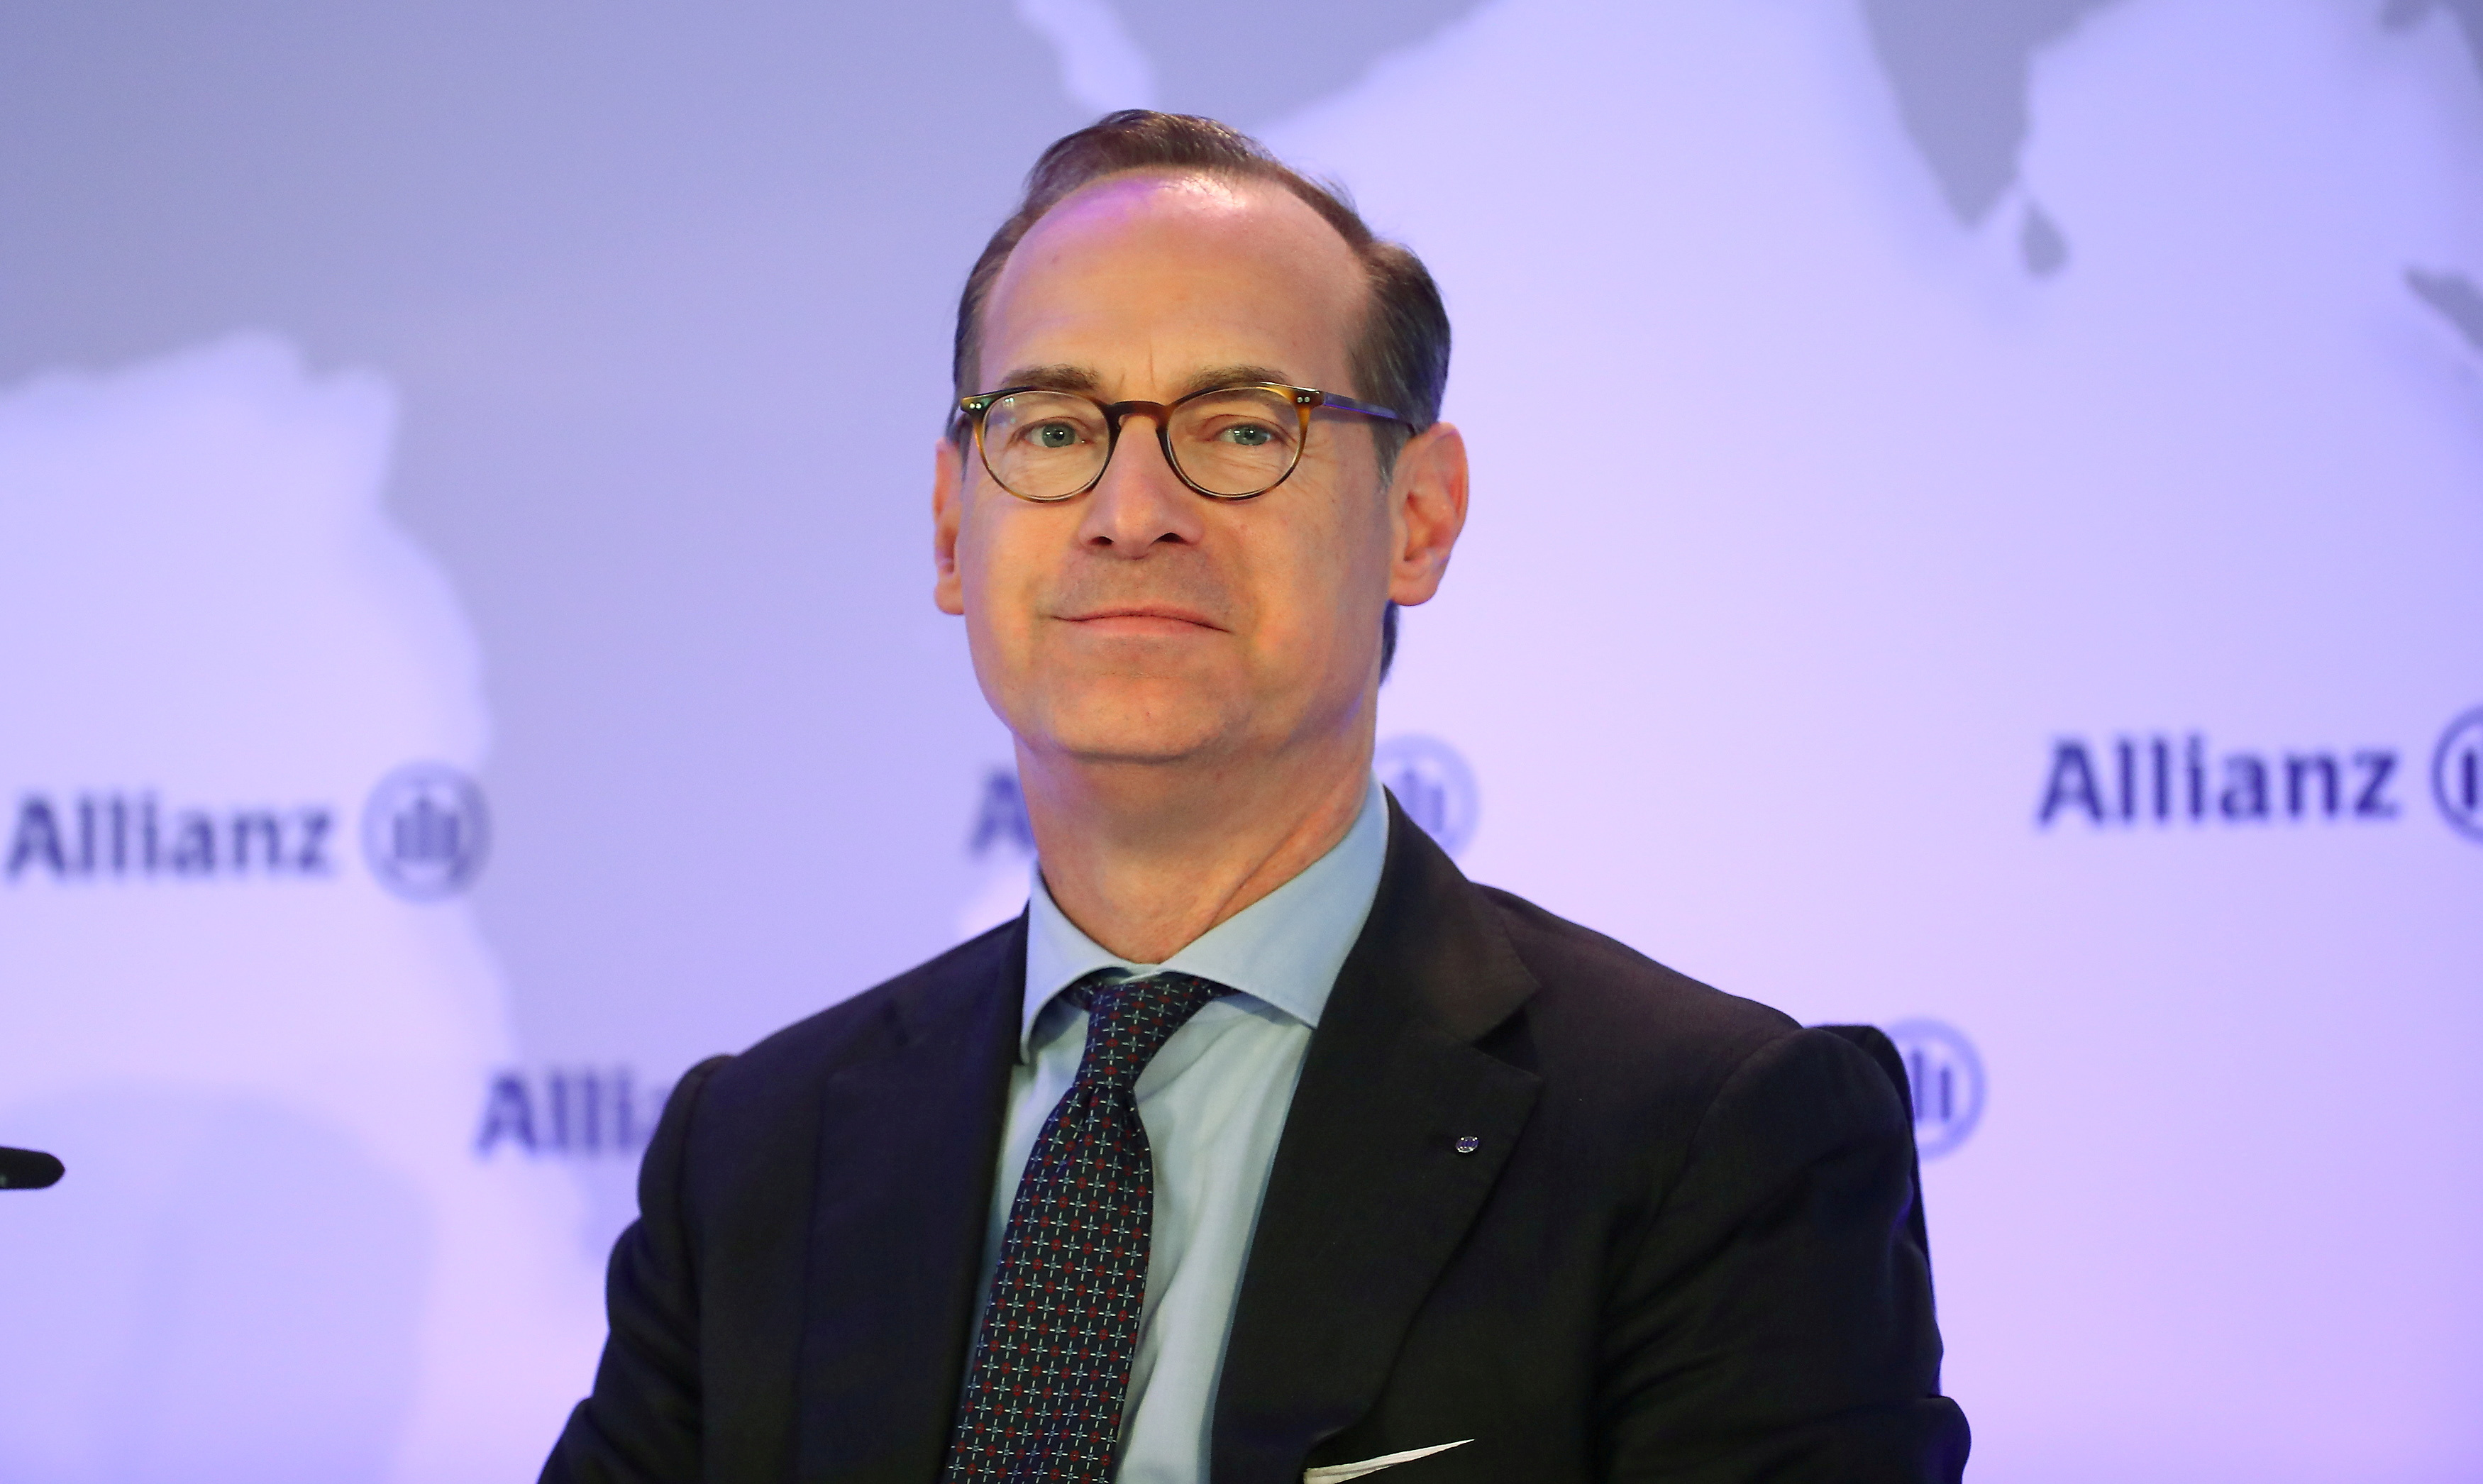 Oliver Baete, Chief Executive Officer of Europe's biggest insurer Allianz SE attends the company's annual news conference in Munich, Germany, February 15, 2019.  REUTERS/Michael Dalder/File Photo